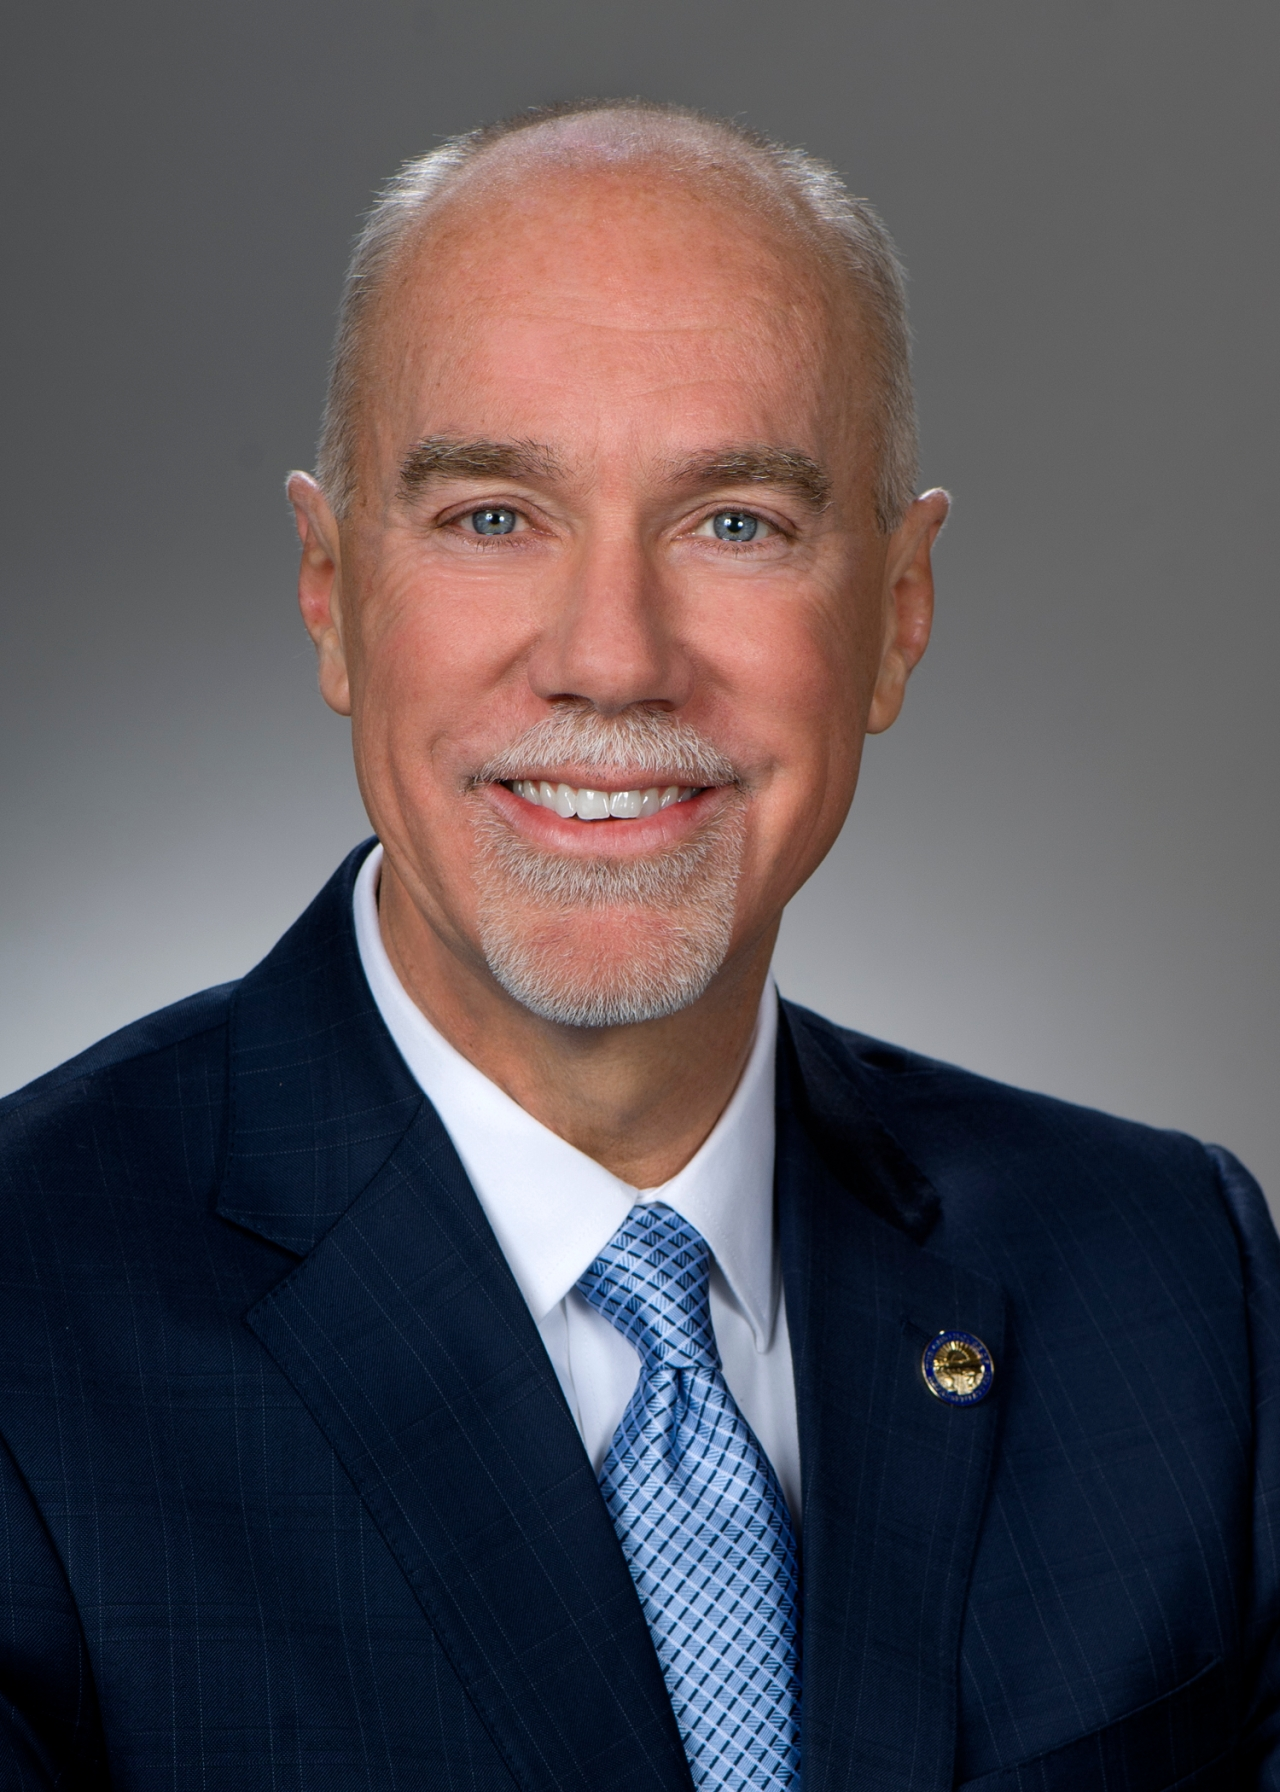 State Rep. Tim Ginter to Host Community Meeting with Attorney General DeWine to Discuss Drug Abuse Epidemic